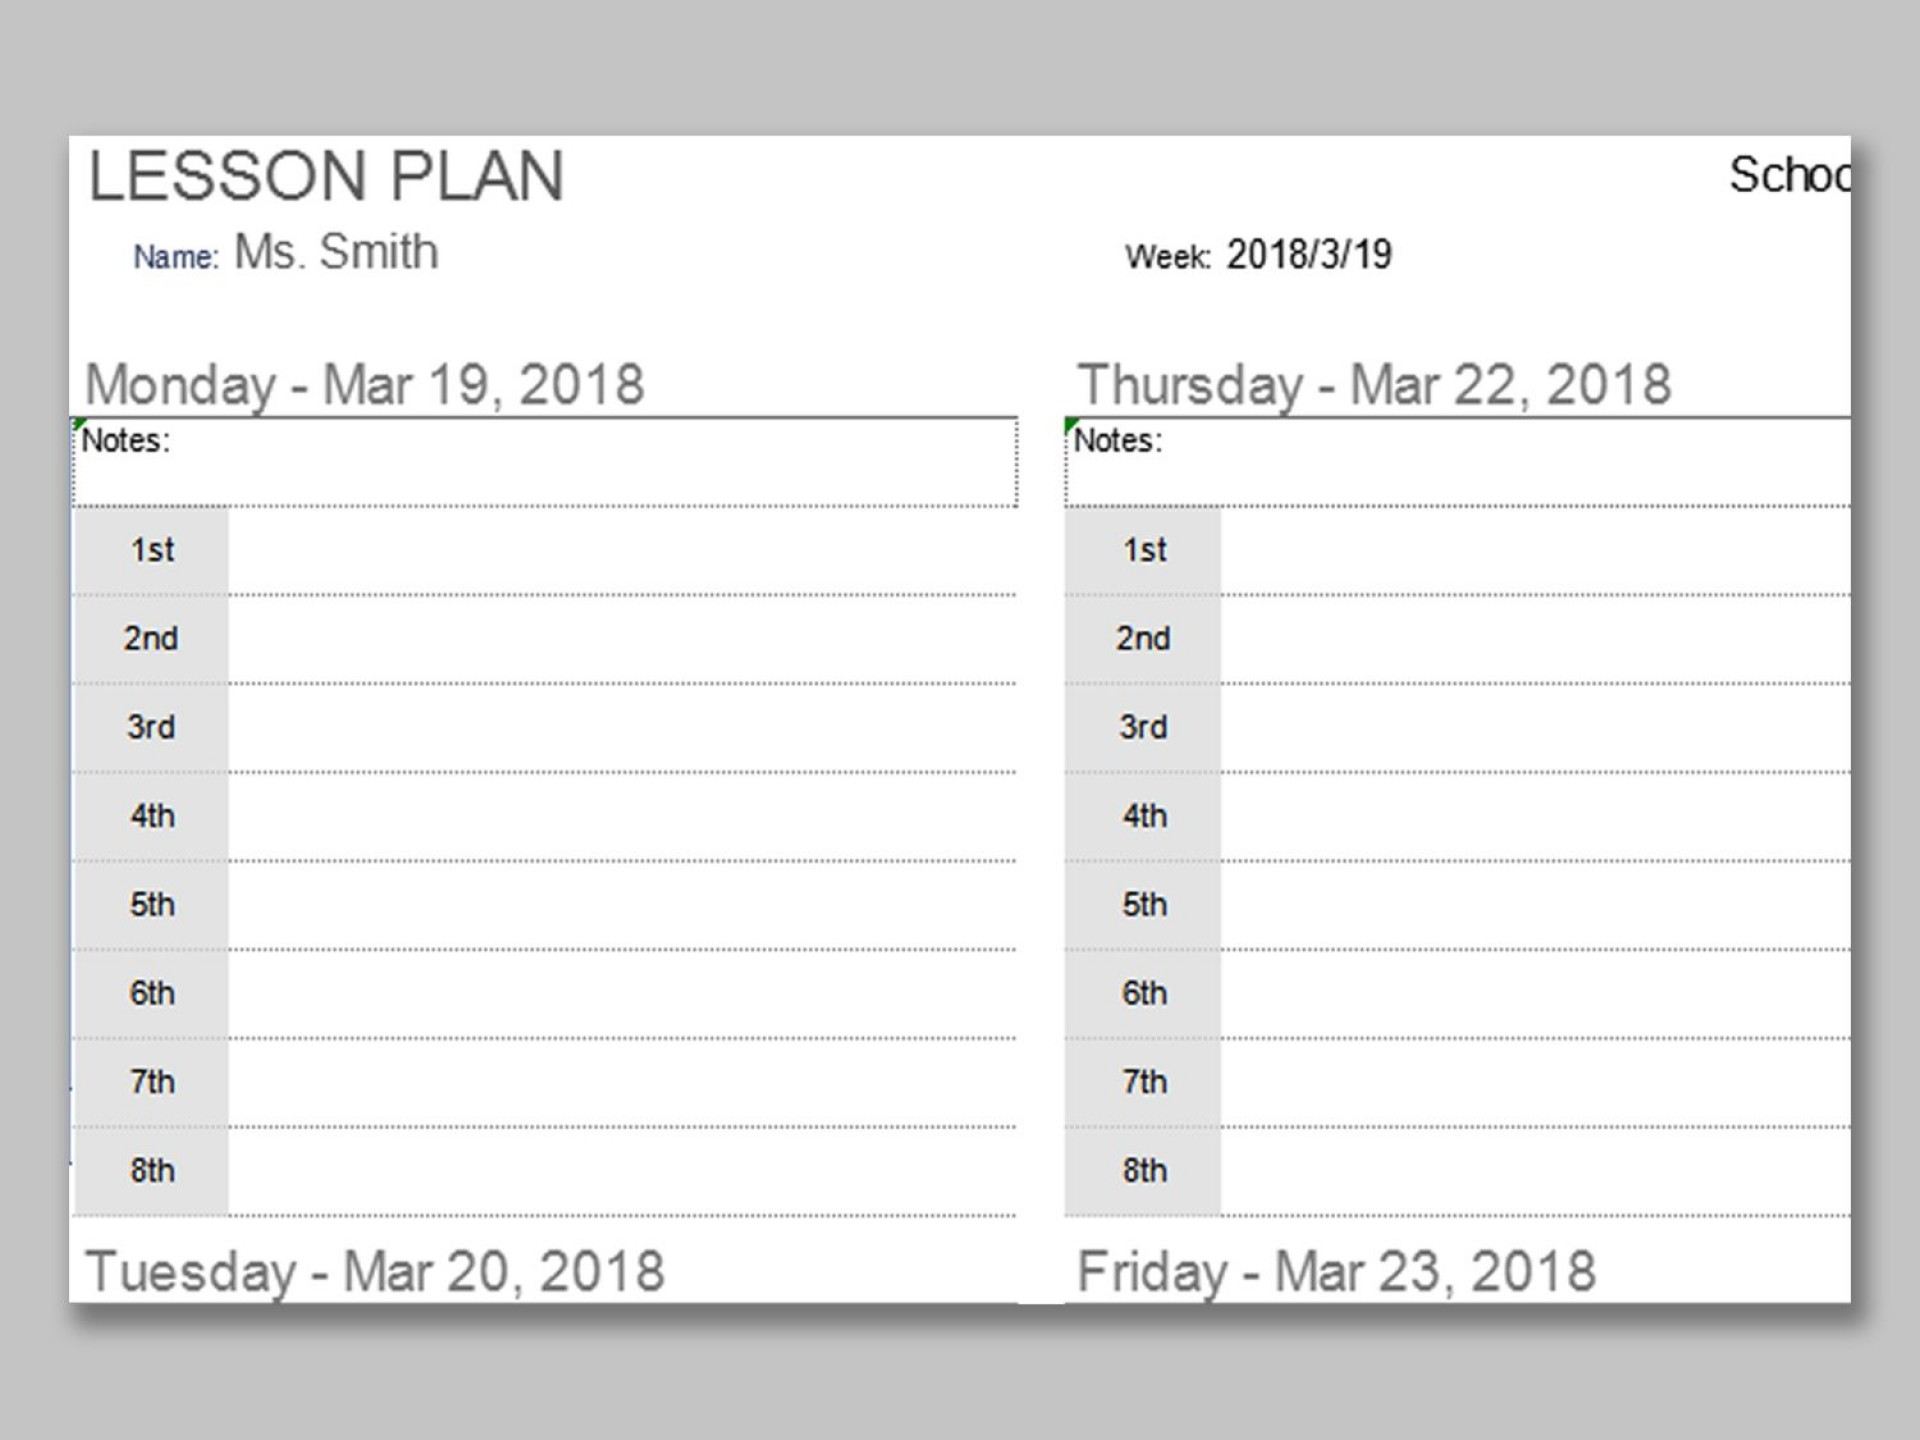 000 Outstanding Printable Lesson Plan Template Weekly Image  Blank Pdf Monthly Free Preschool1920